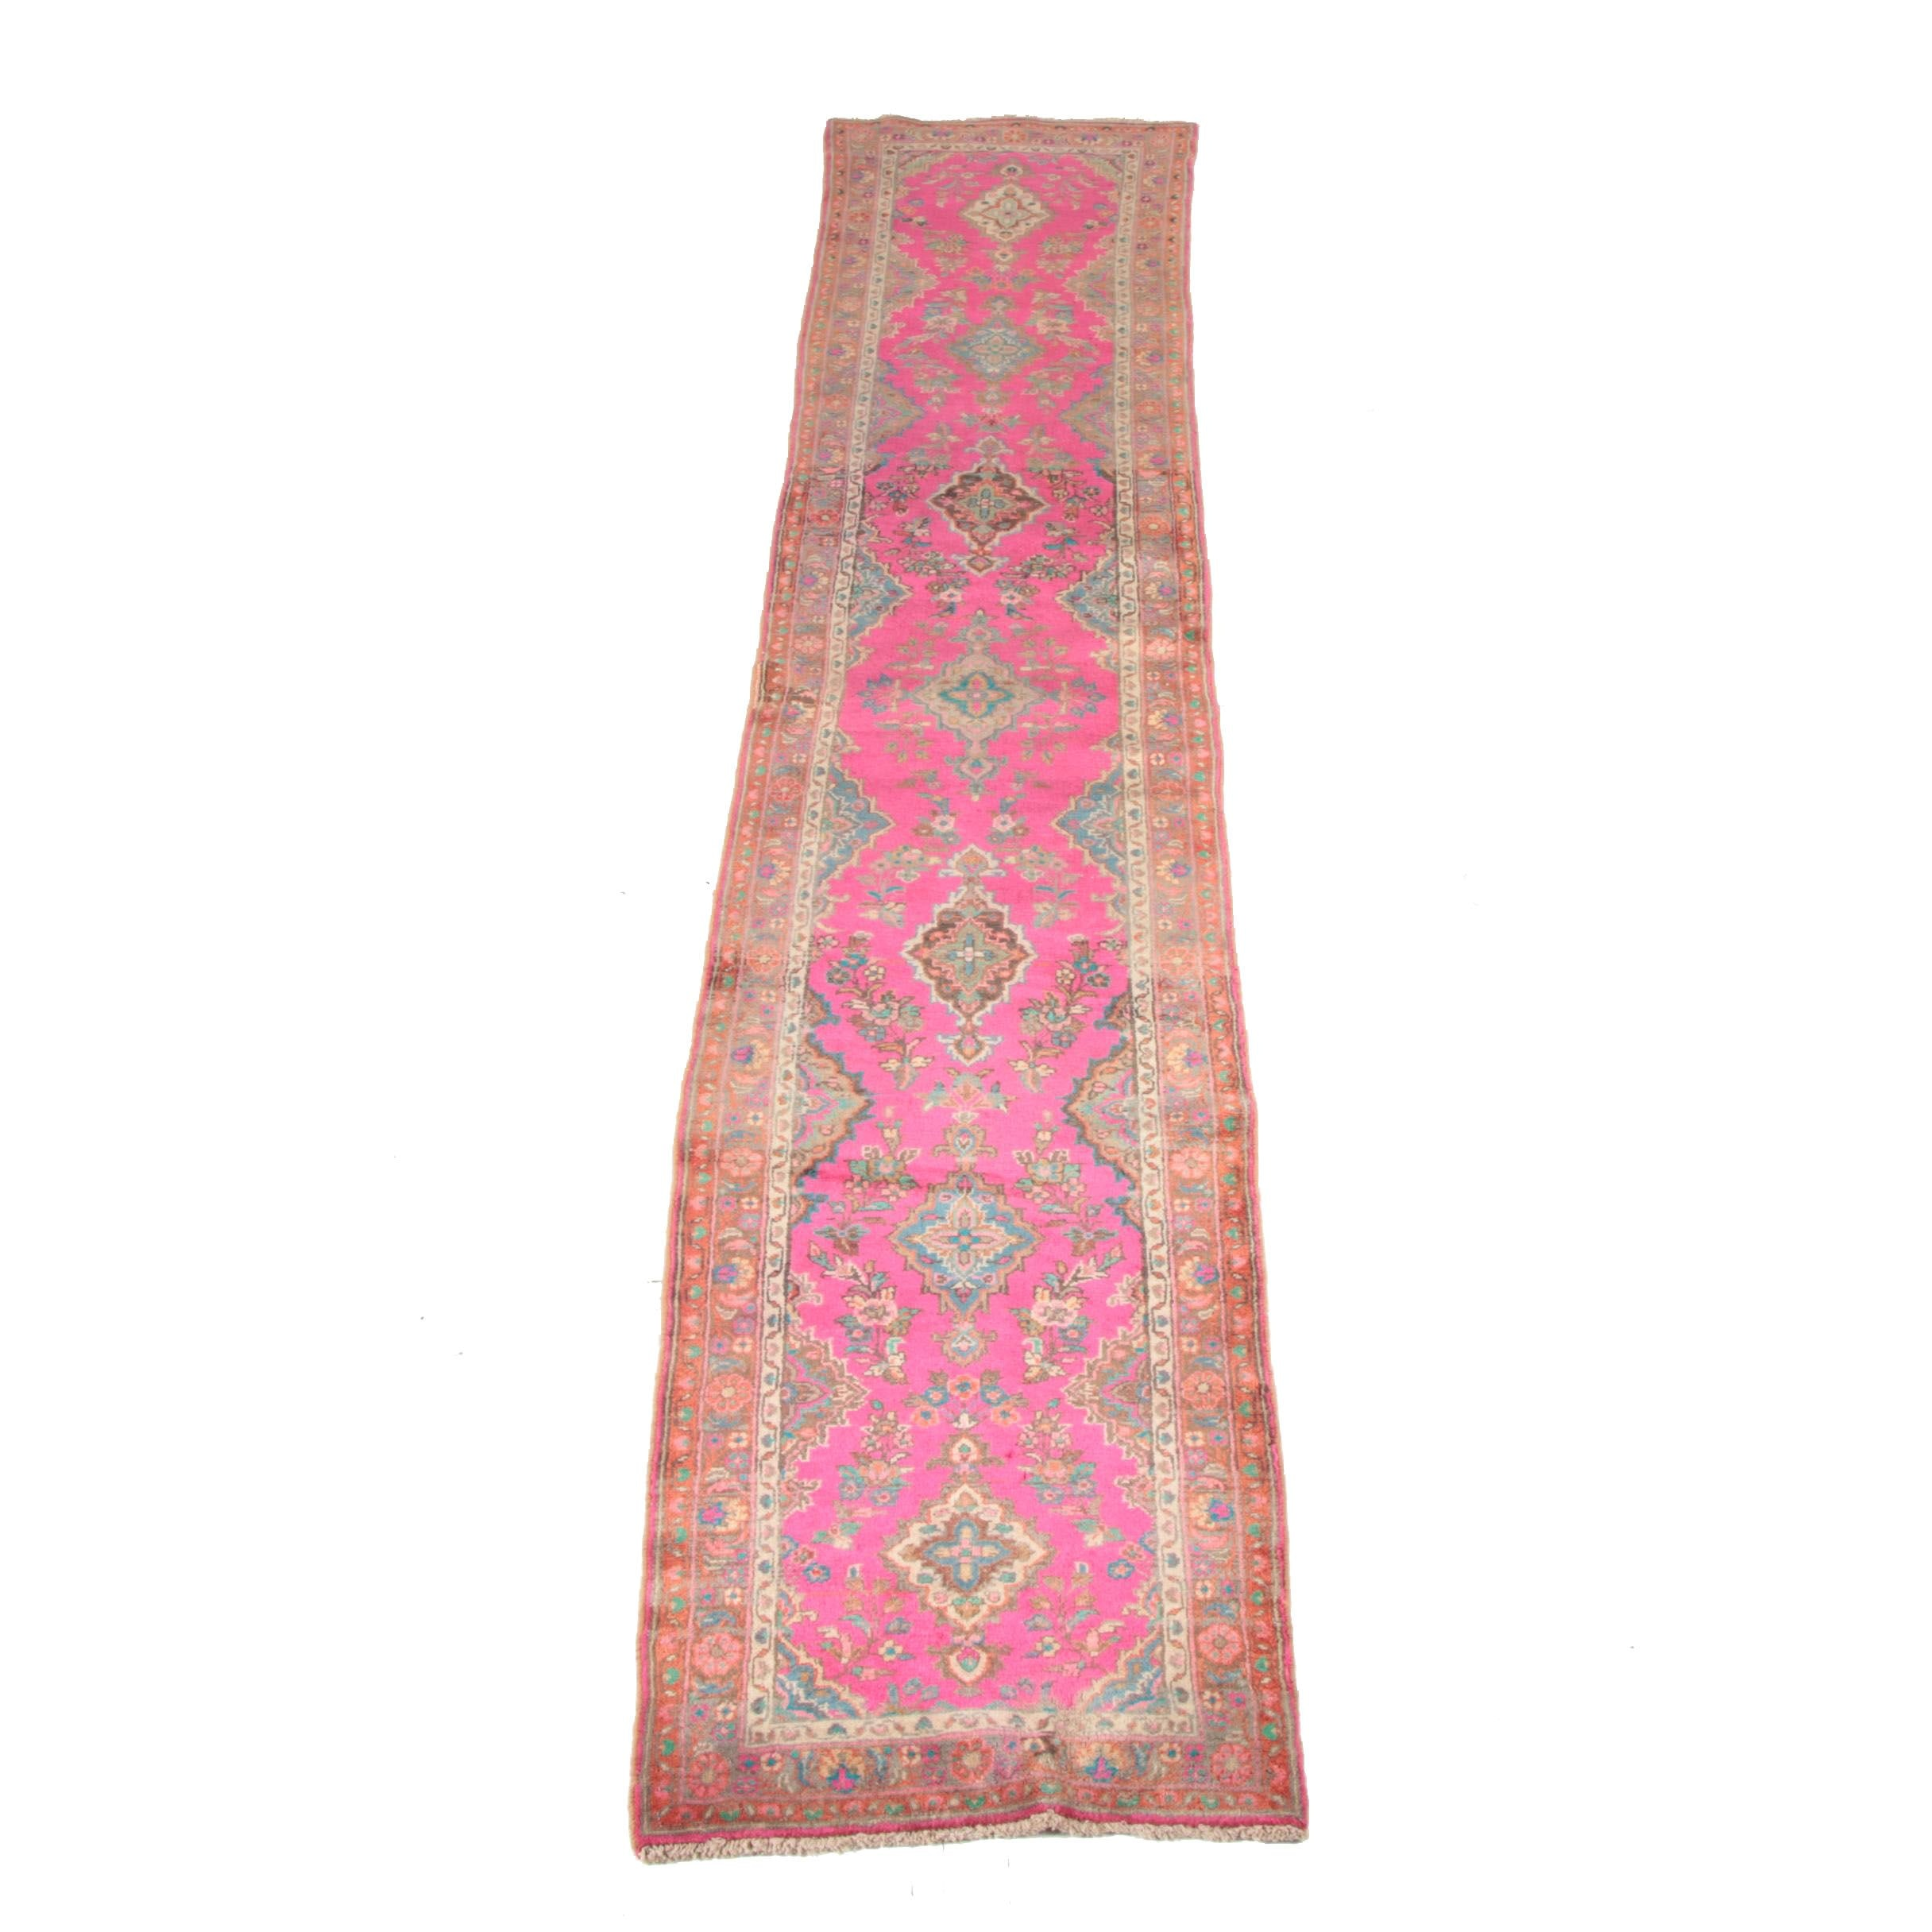 Semi-Antique Hand-Knotted Persian Carpet Runner